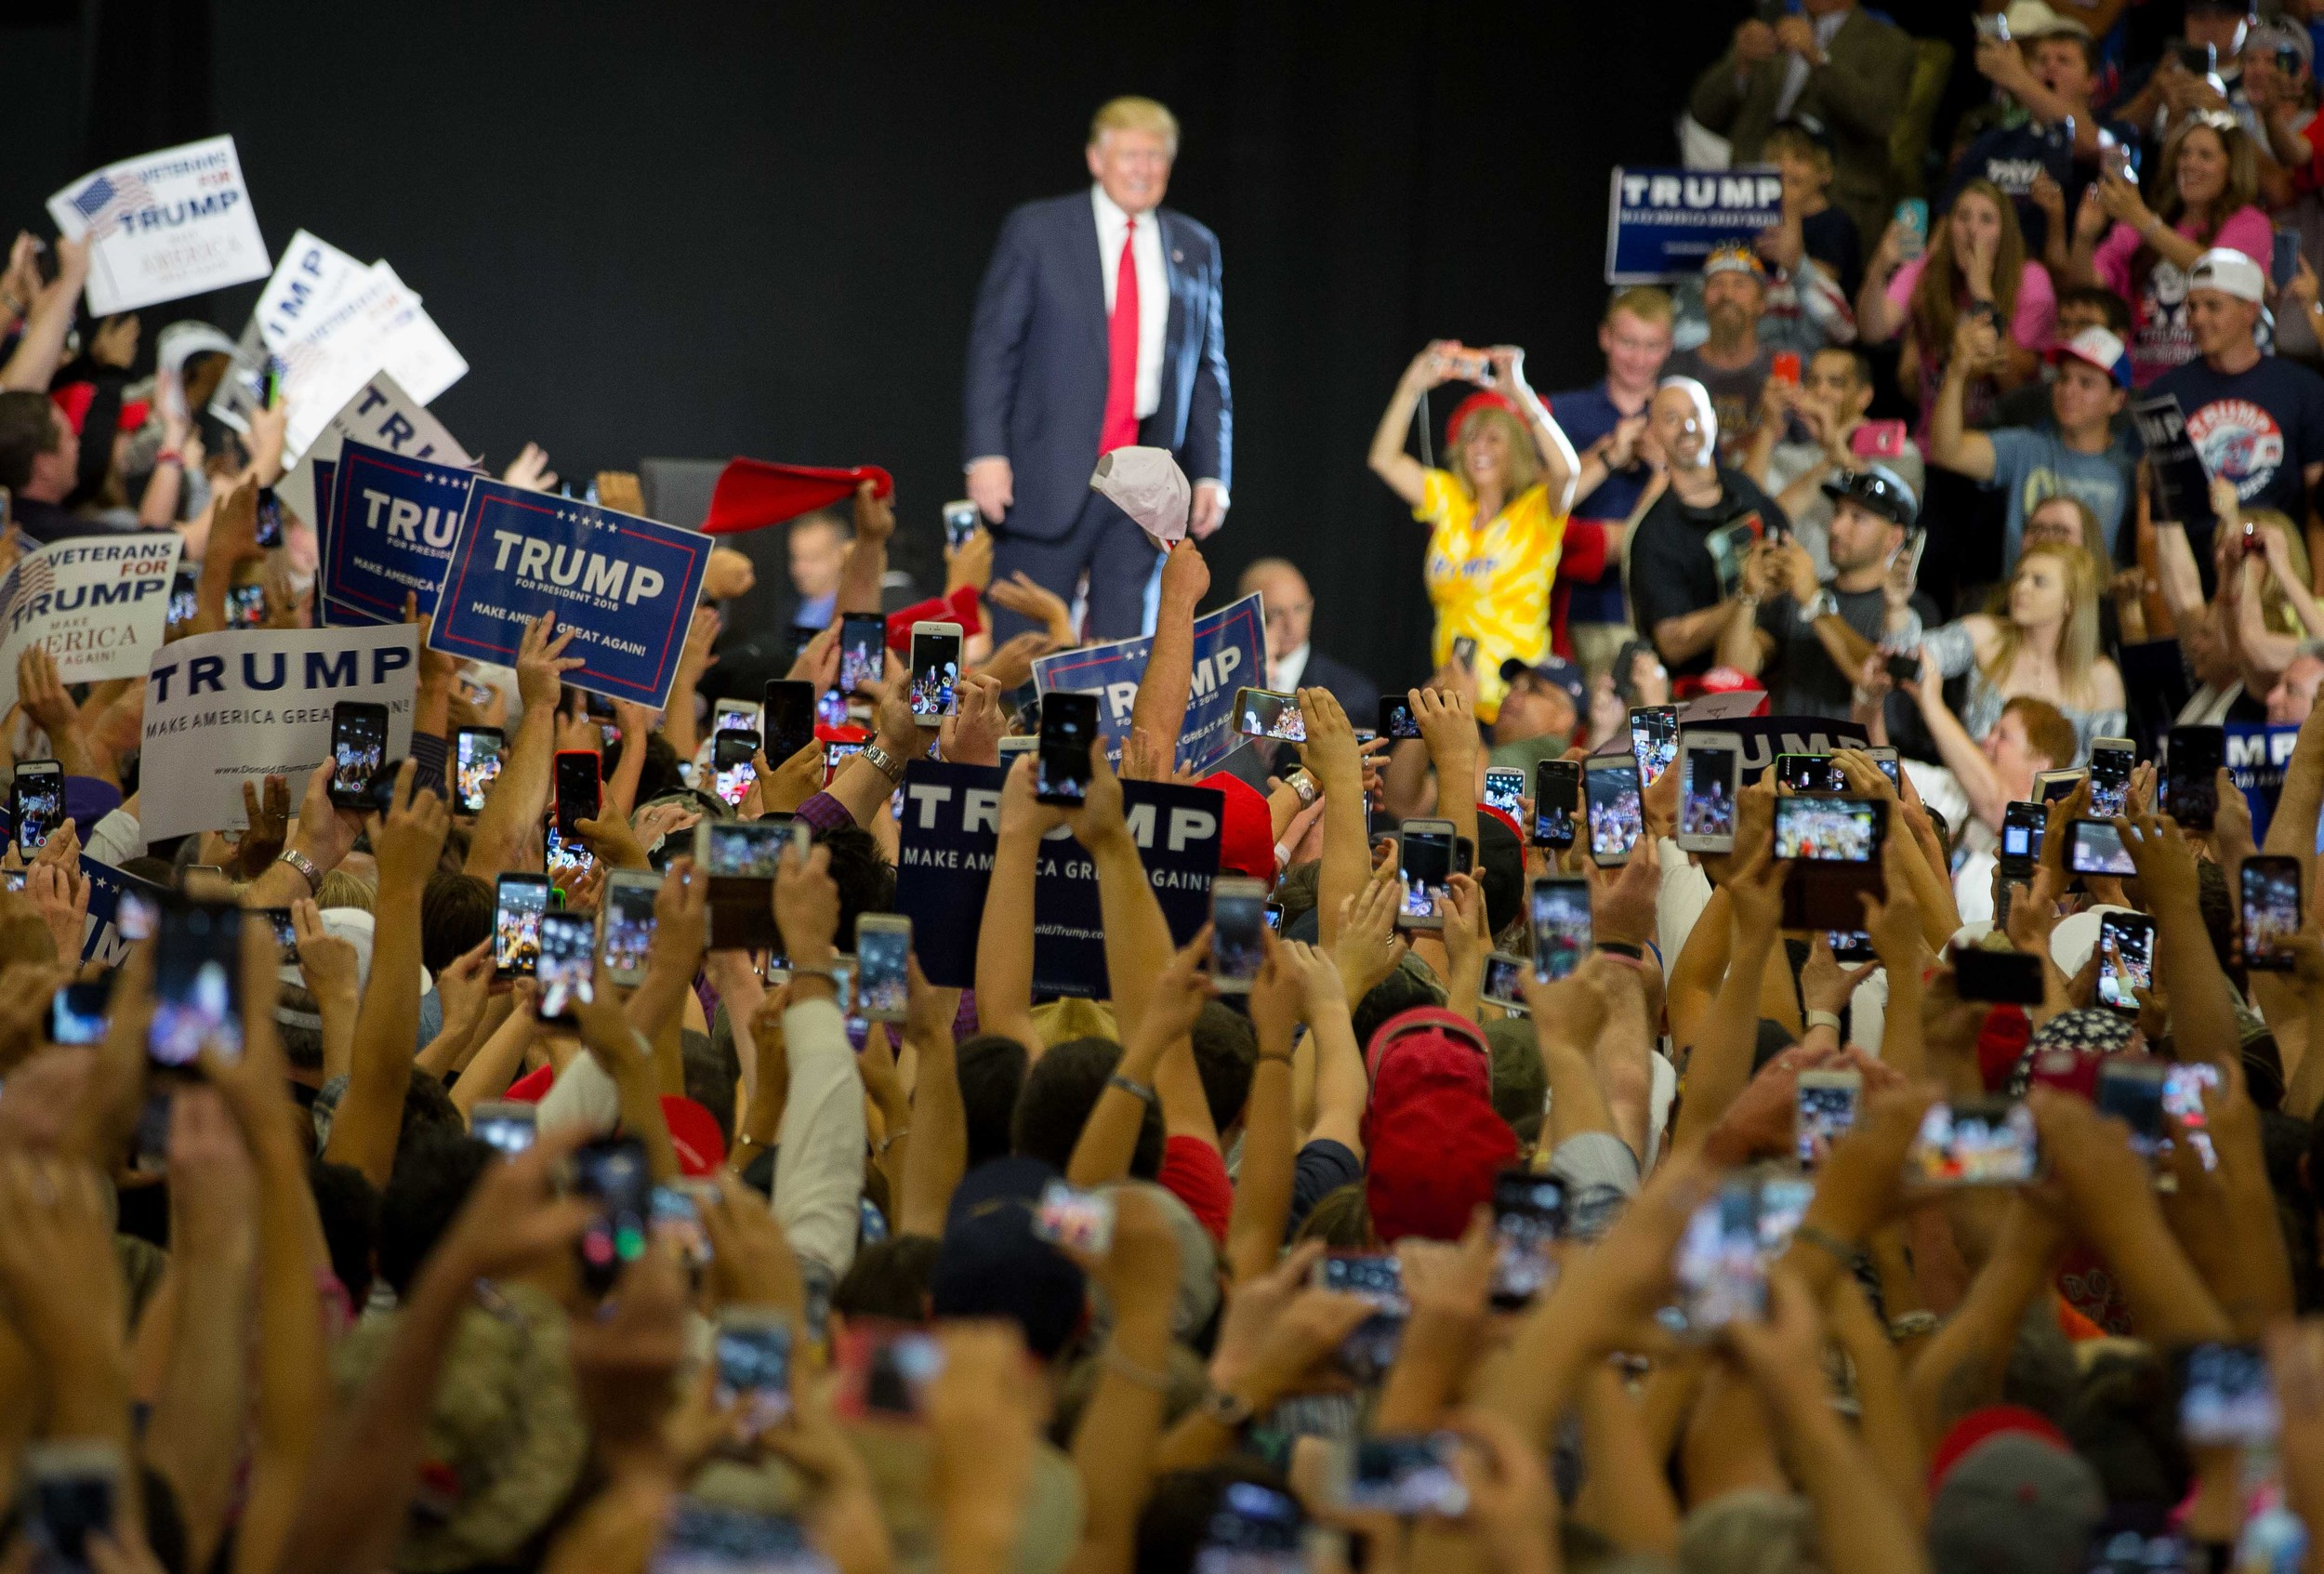 People inside the Albuquerque Convention Center takes photos of presidential candidate Donald Trump as he walks towards a podium, May 24, 2016.